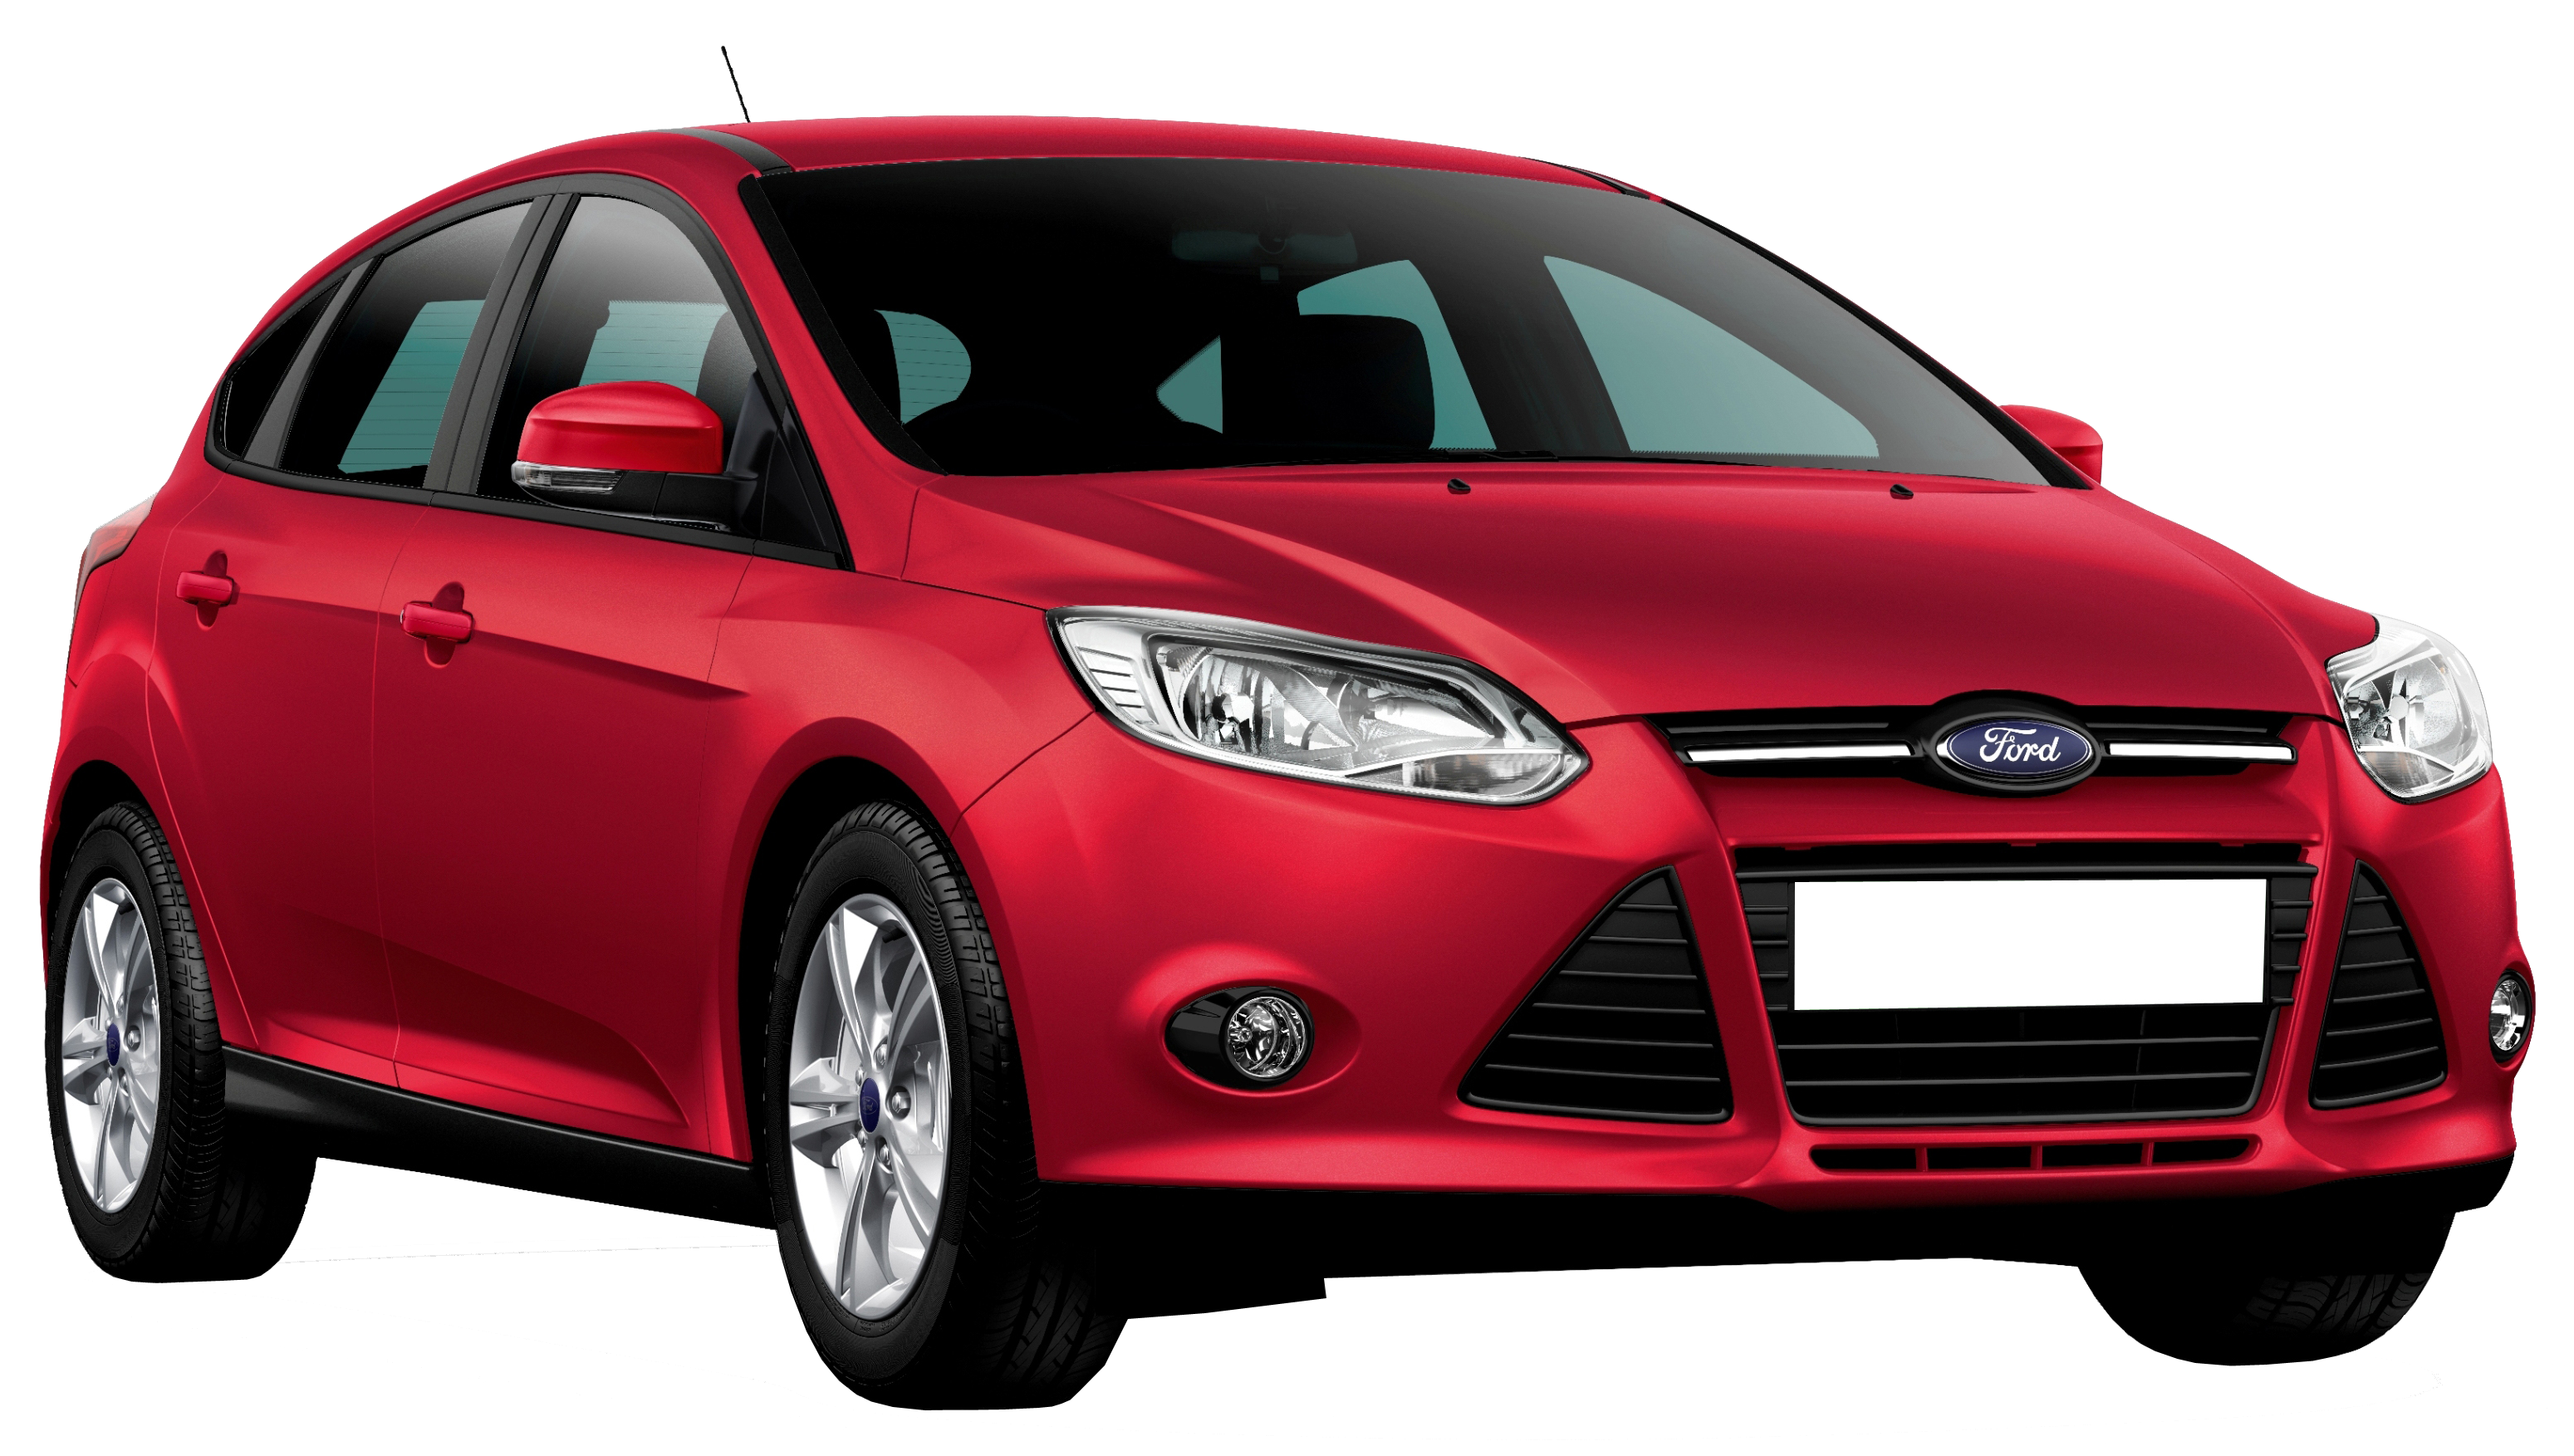 Car Picture PNG Images